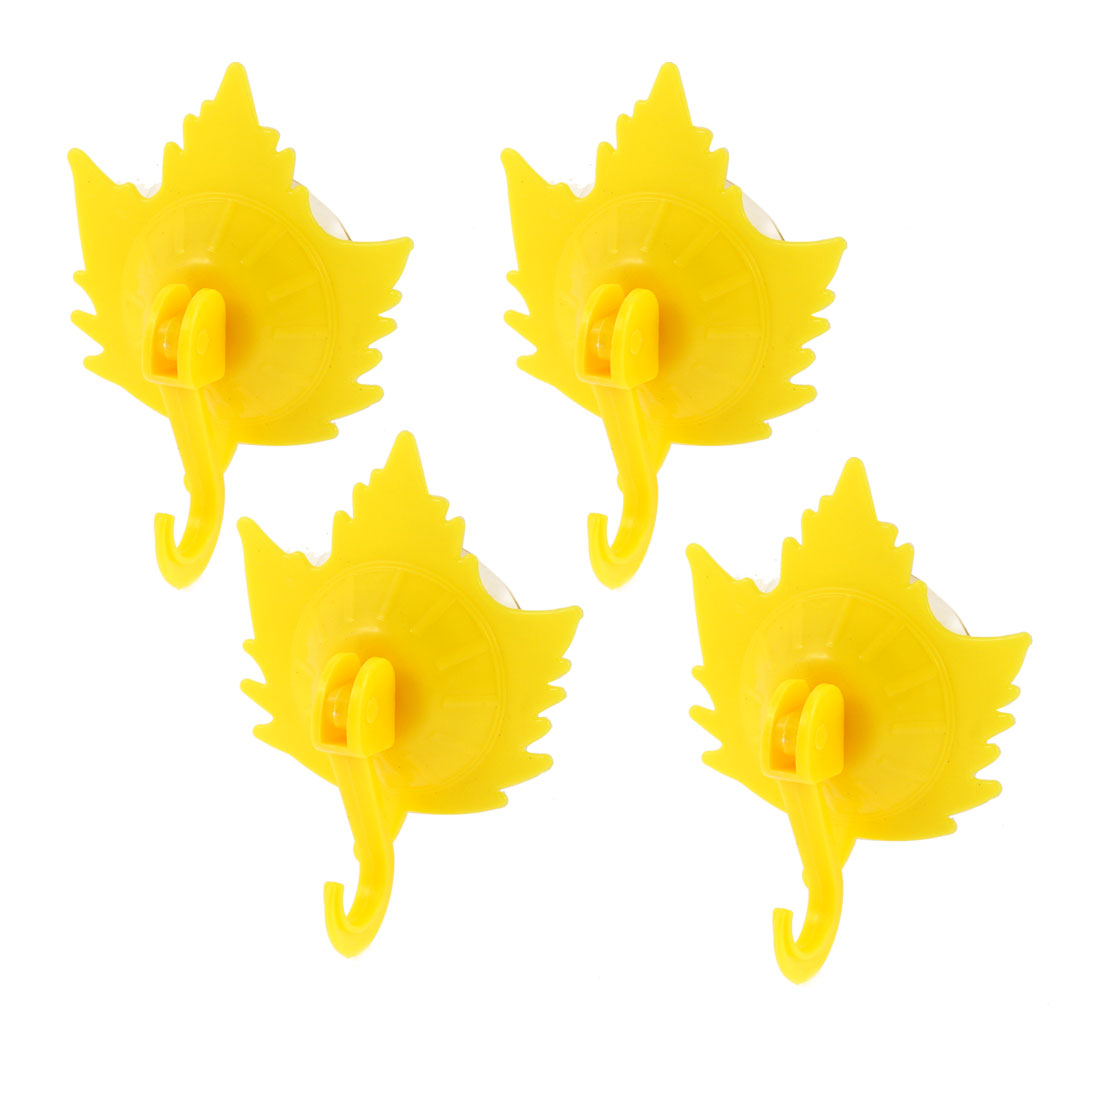 Household Towel Maple Leaf Design Suction Cup Hooks Wall Hangers Yellow 4pcs